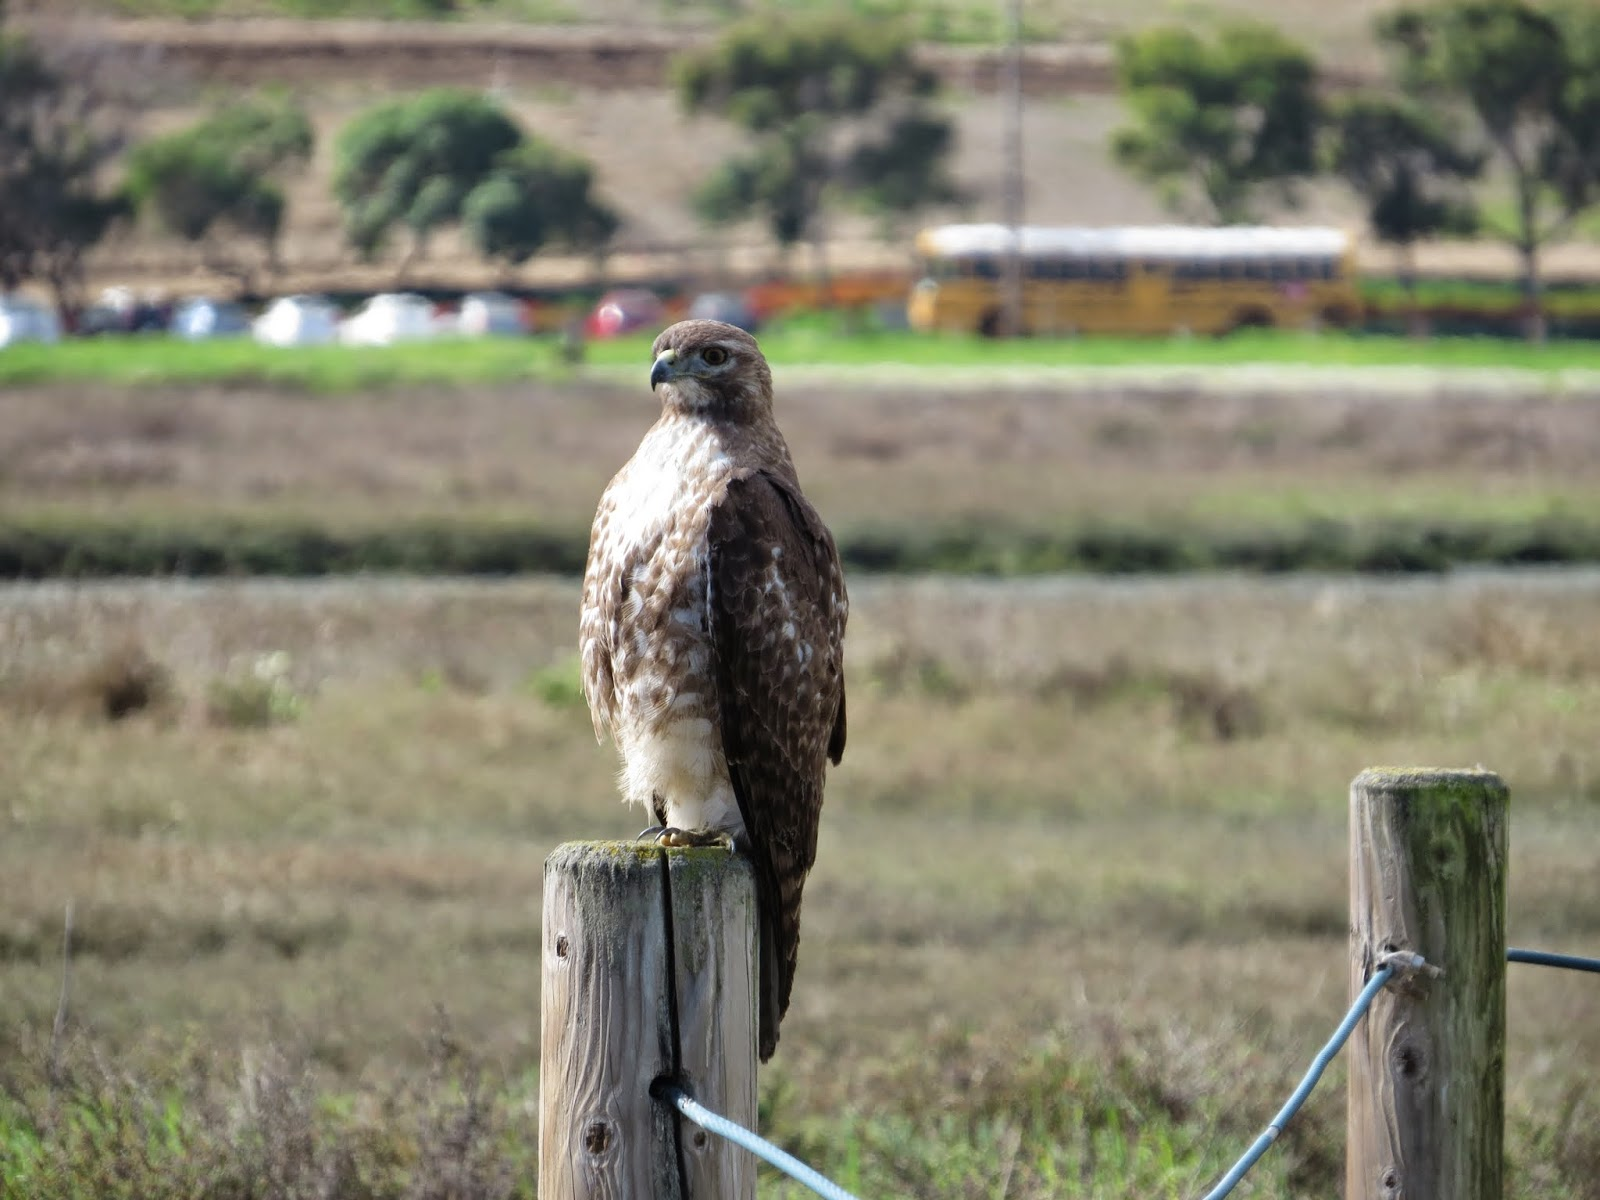 Hawk at Palo Alto Baylands